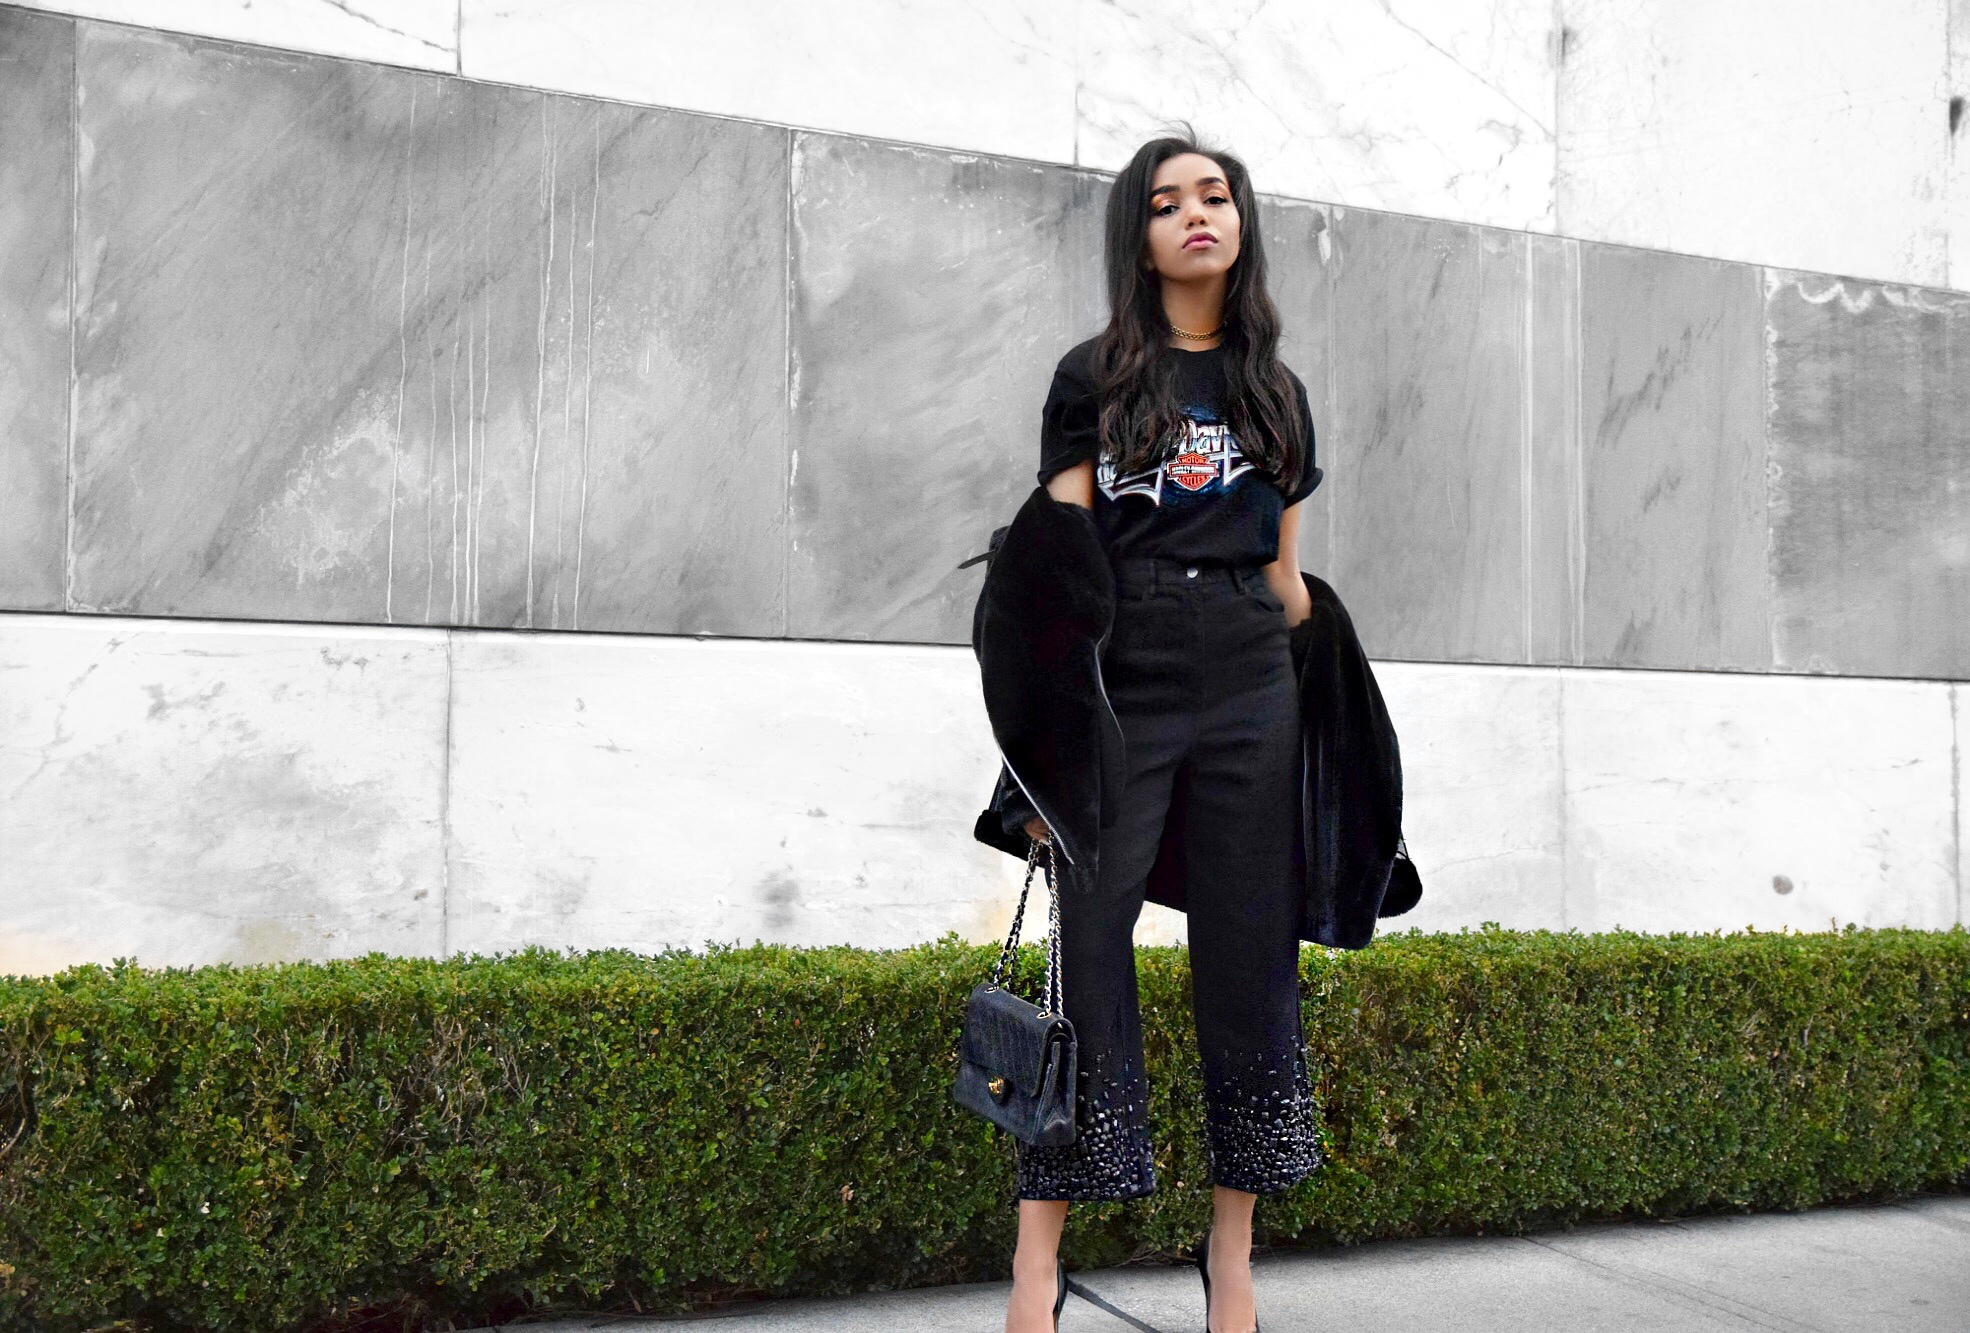 How To Pretend You're Cool // Black Sleek Street Style & Personal Style Look // Vintage Harley Davidson T Shirt // Tibi Embellished Bottom Culottes Jeans Denim // Acne Studios Shearling Coat // Christian Louboutin Plain Black Pointed Toe Pumps // Chanel Vintage Black Quilted Flap Bag // Are You Am I Chain Link Choker // Los Angeles Fashion Blogger Daphne Blunt: To Style, With Love